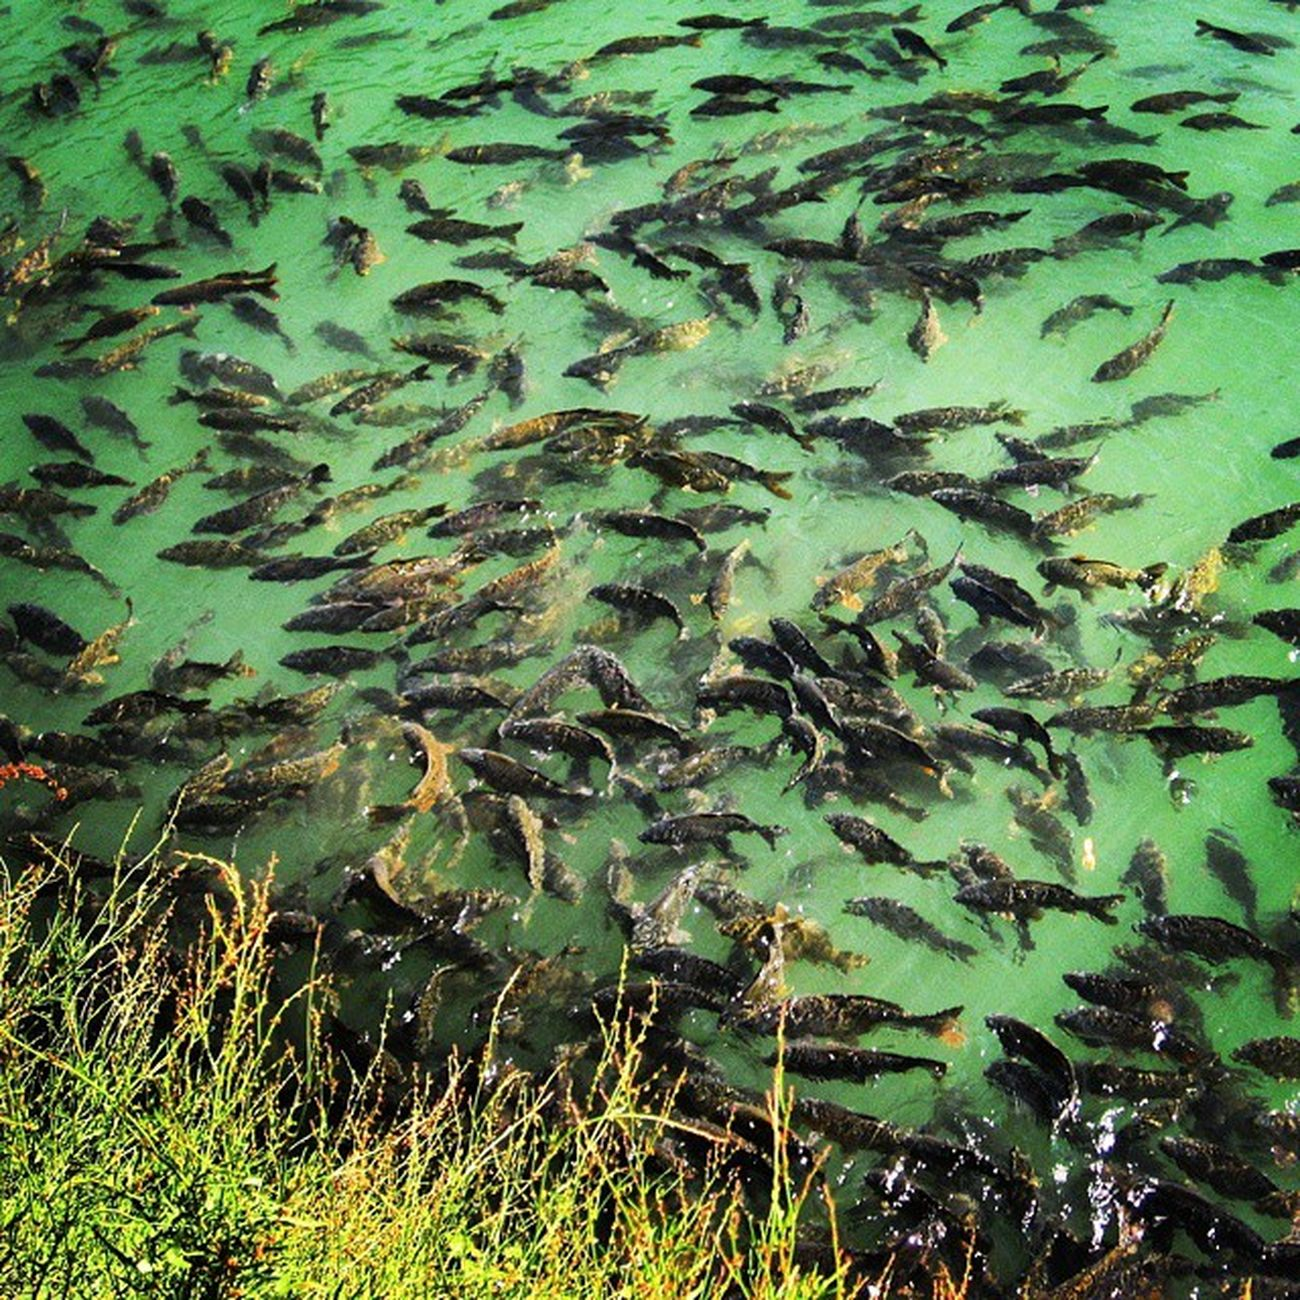 Fishes,best example of agility. Canon Capture Morning Nainital Fish Feedingfish Splashes Greenwater Aquatic Friends Naturalaquarium Instafish Instagood Freshwater Beautiful Animallover Nature_shooter LoveNature